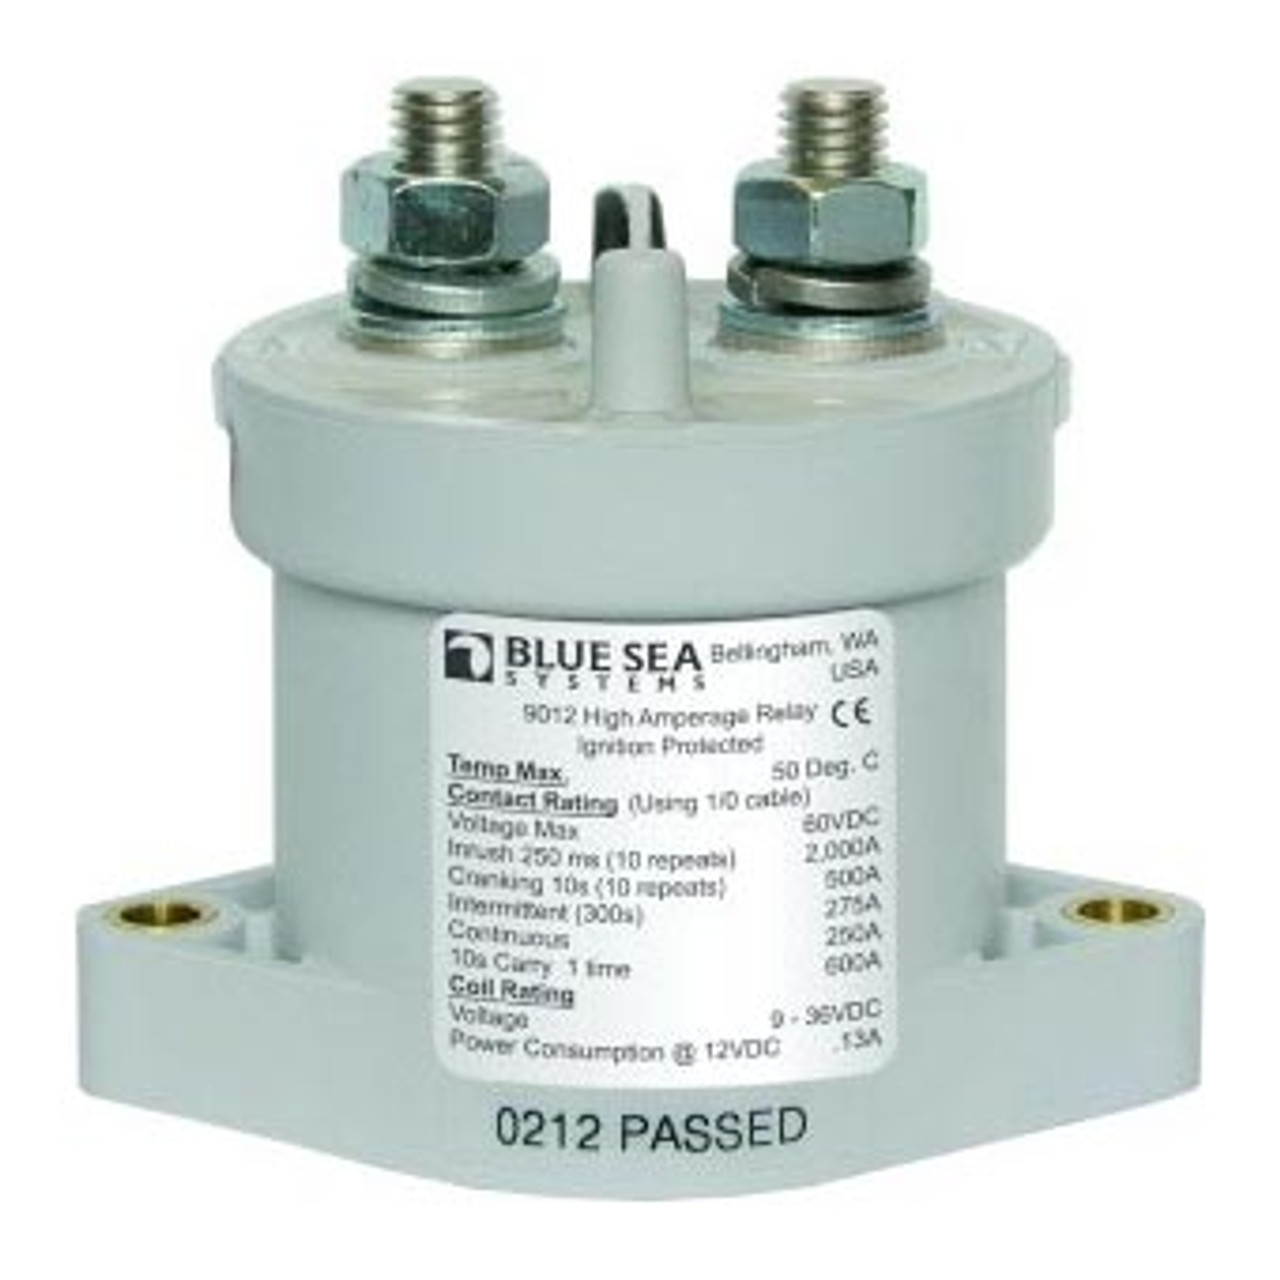 SOLENOID E SERIES 250A 12/24V WITH CE